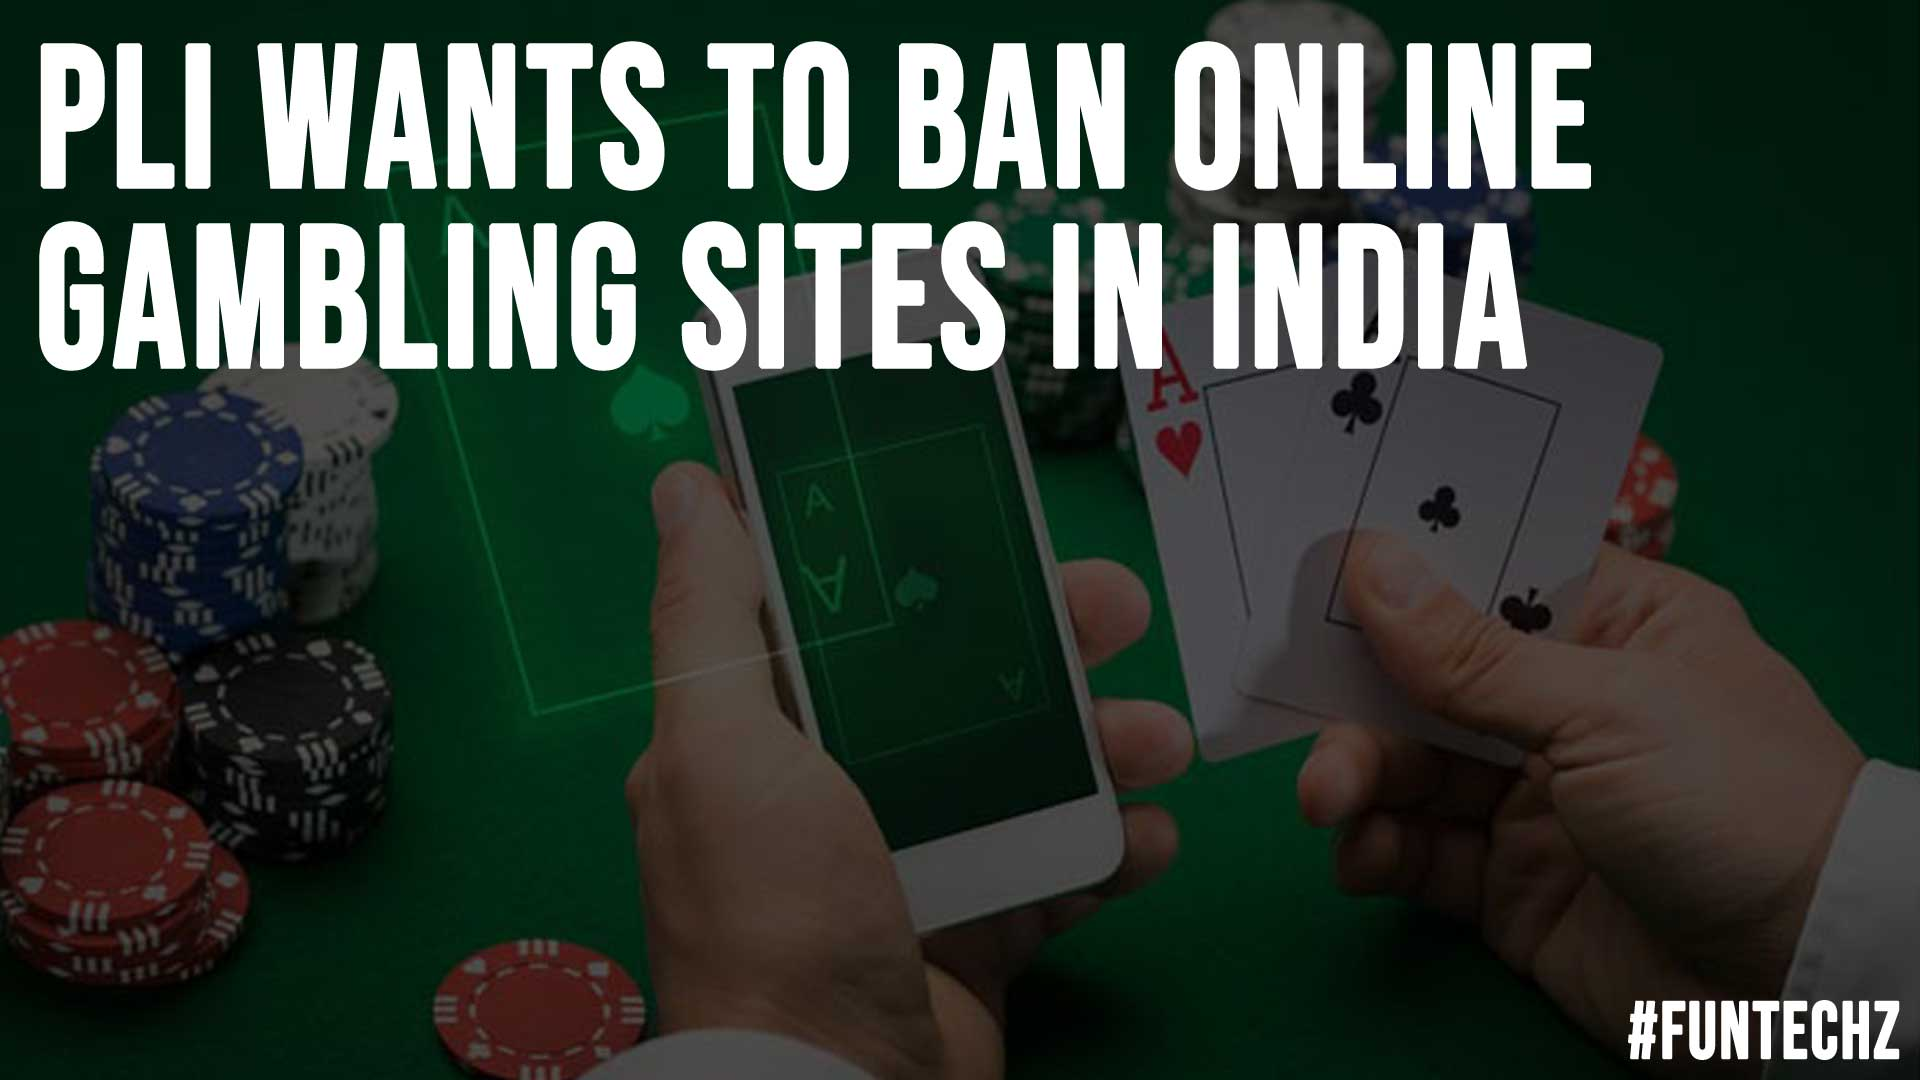 PLI Wants to Ban Online Gambling Sites in India